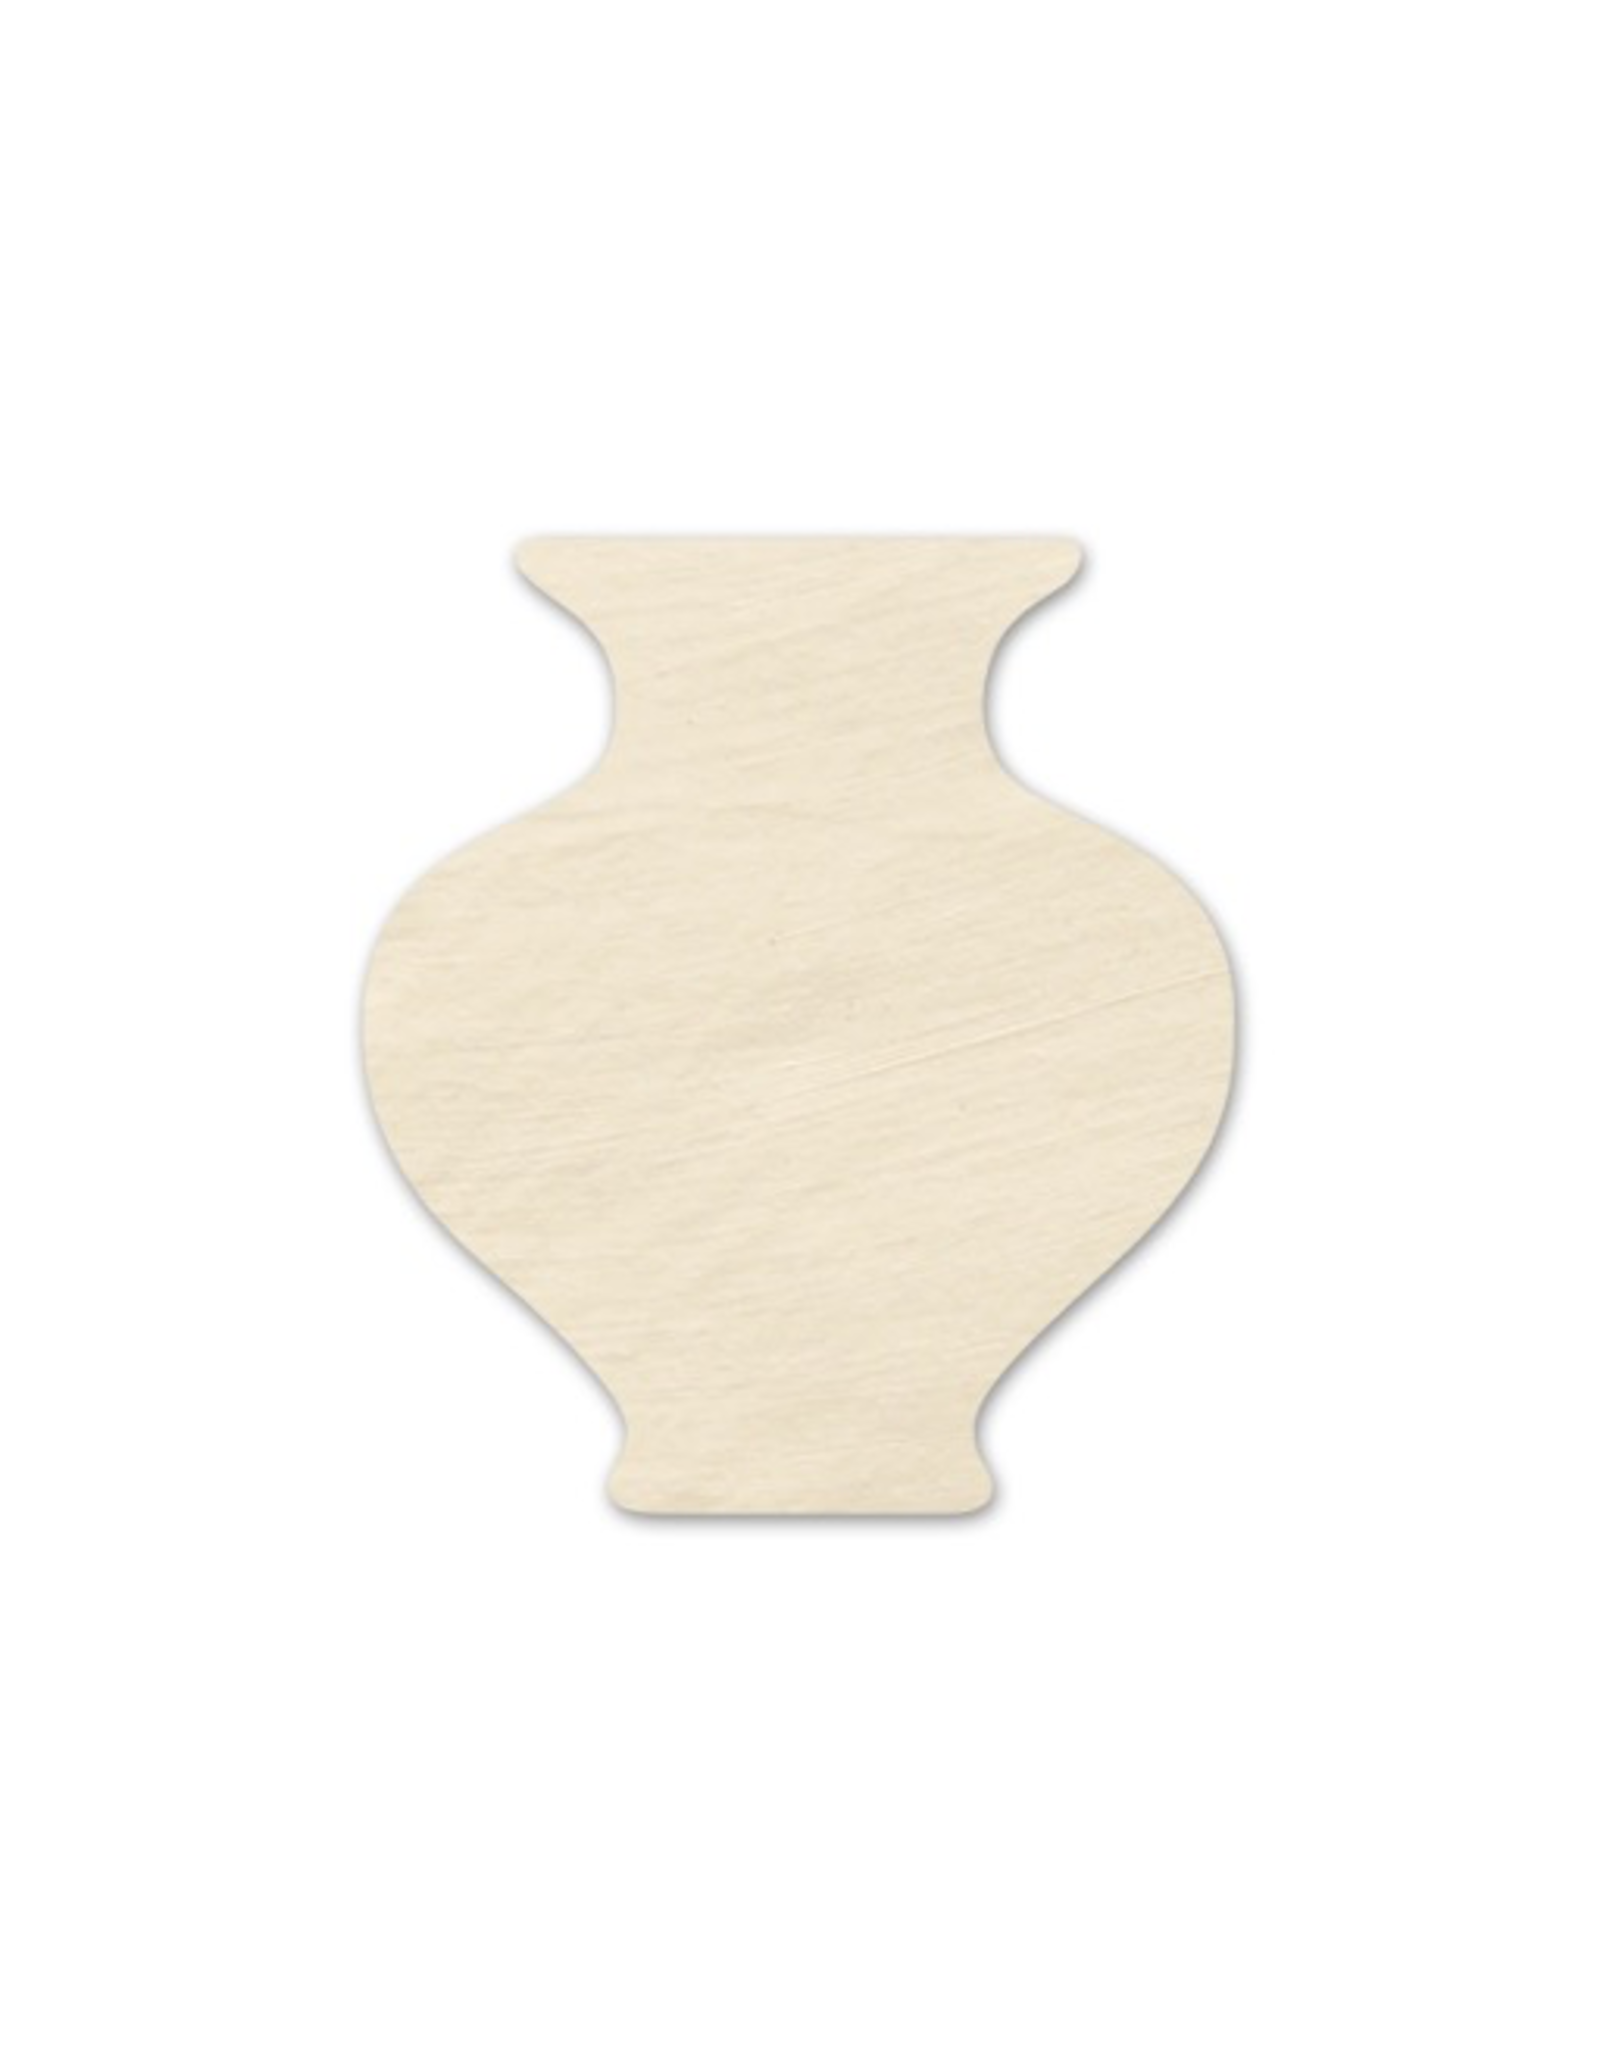 Valentines CWE white earthenware